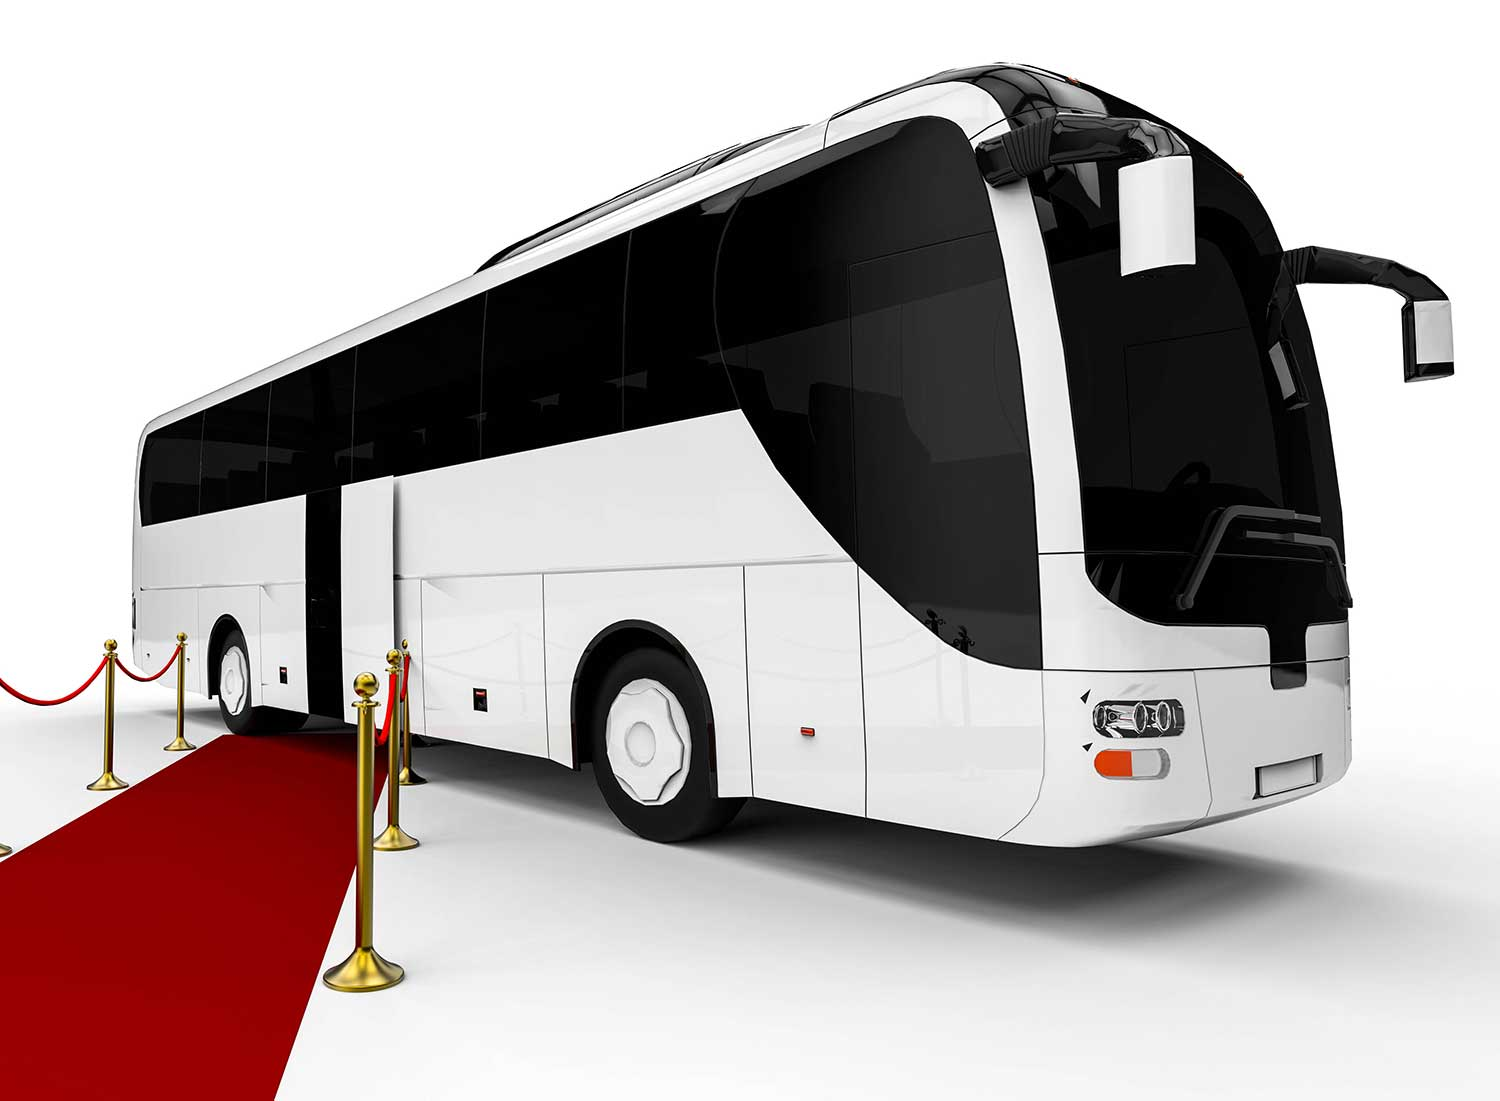 Tampa Party Bus - Photo of a bus with a red carpet in front